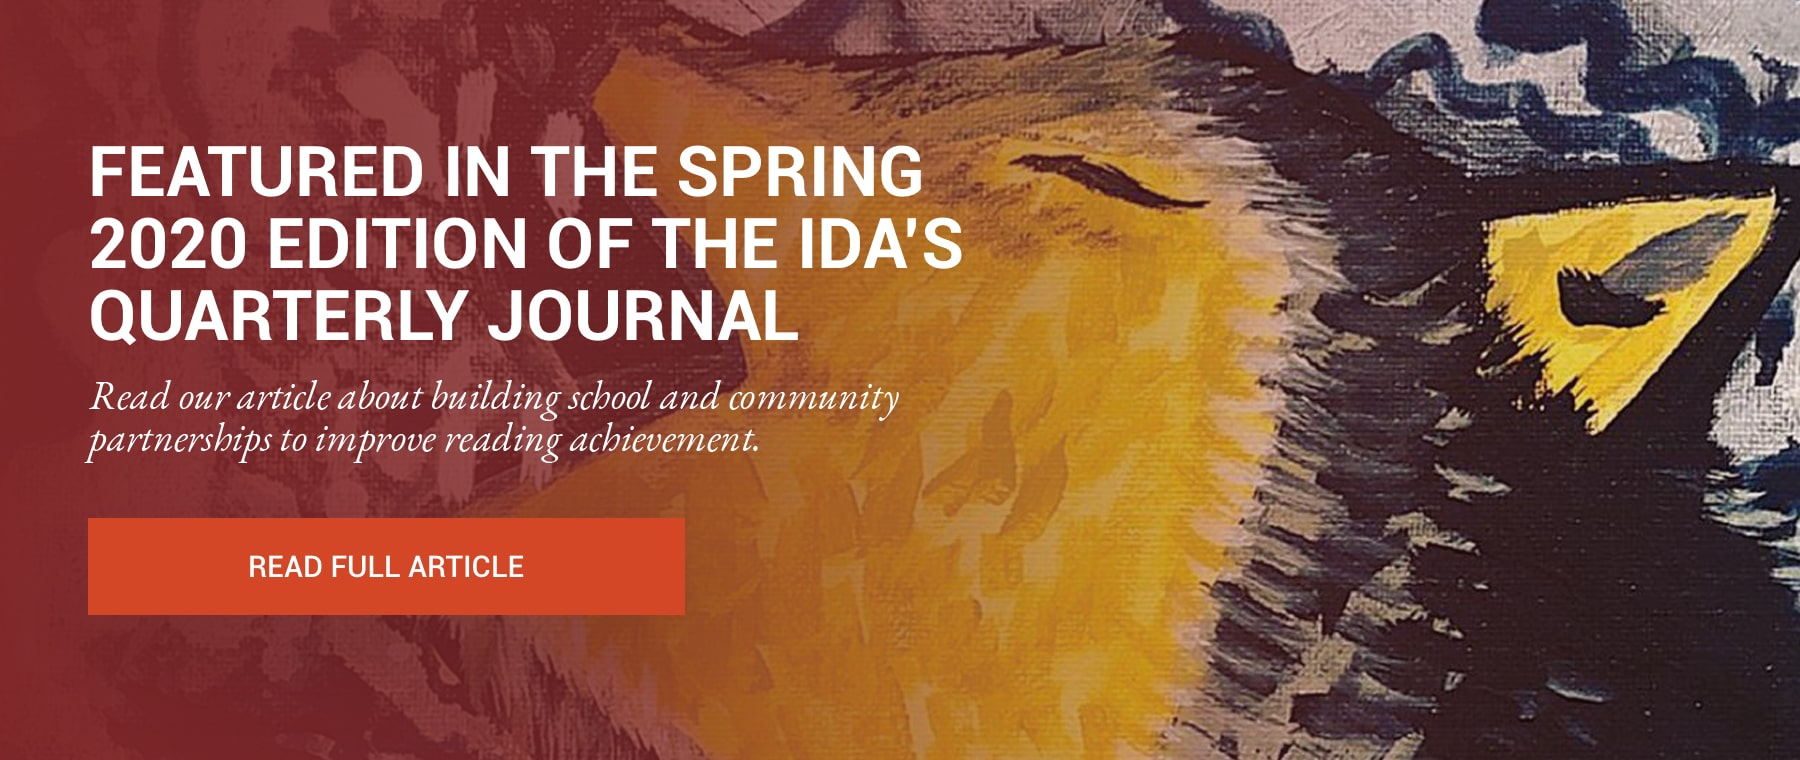 IDA Quarterly Journal Feature Slider